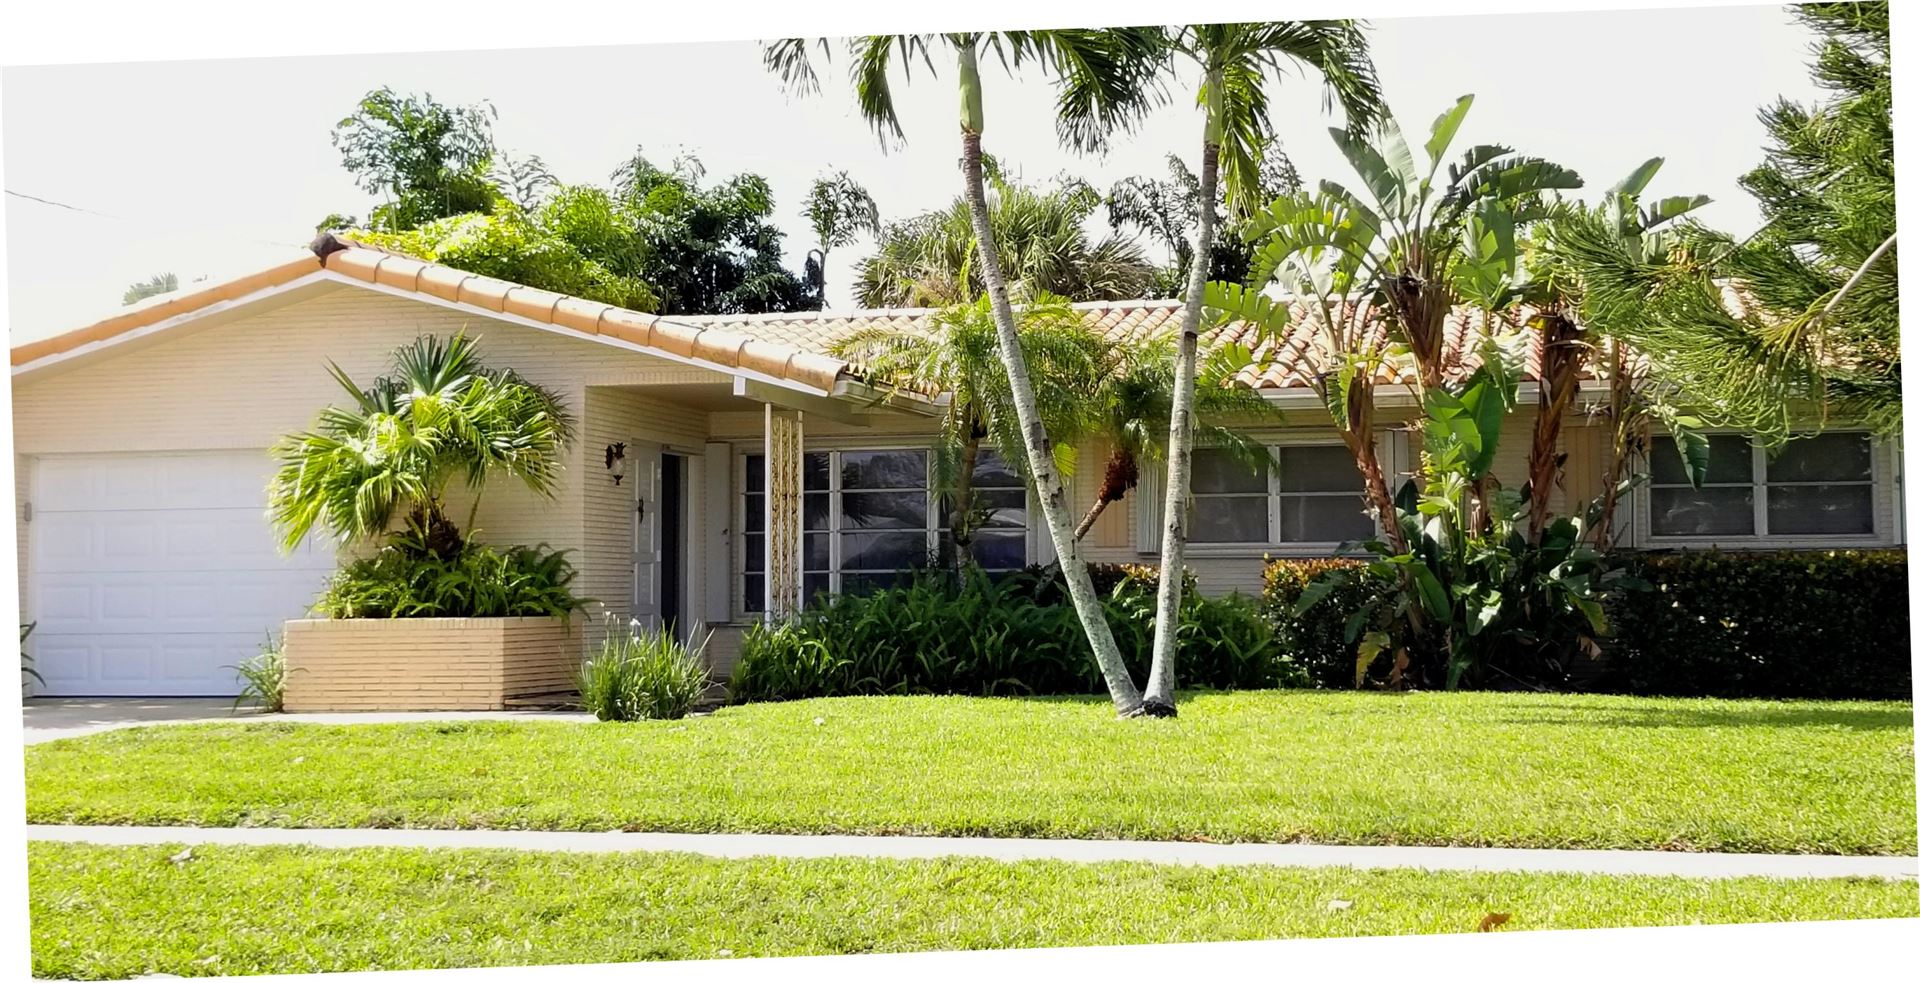 Photo of 6 Burning Tree Lane, Boca Raton, FL 33431 (MLS # RX-10716496)